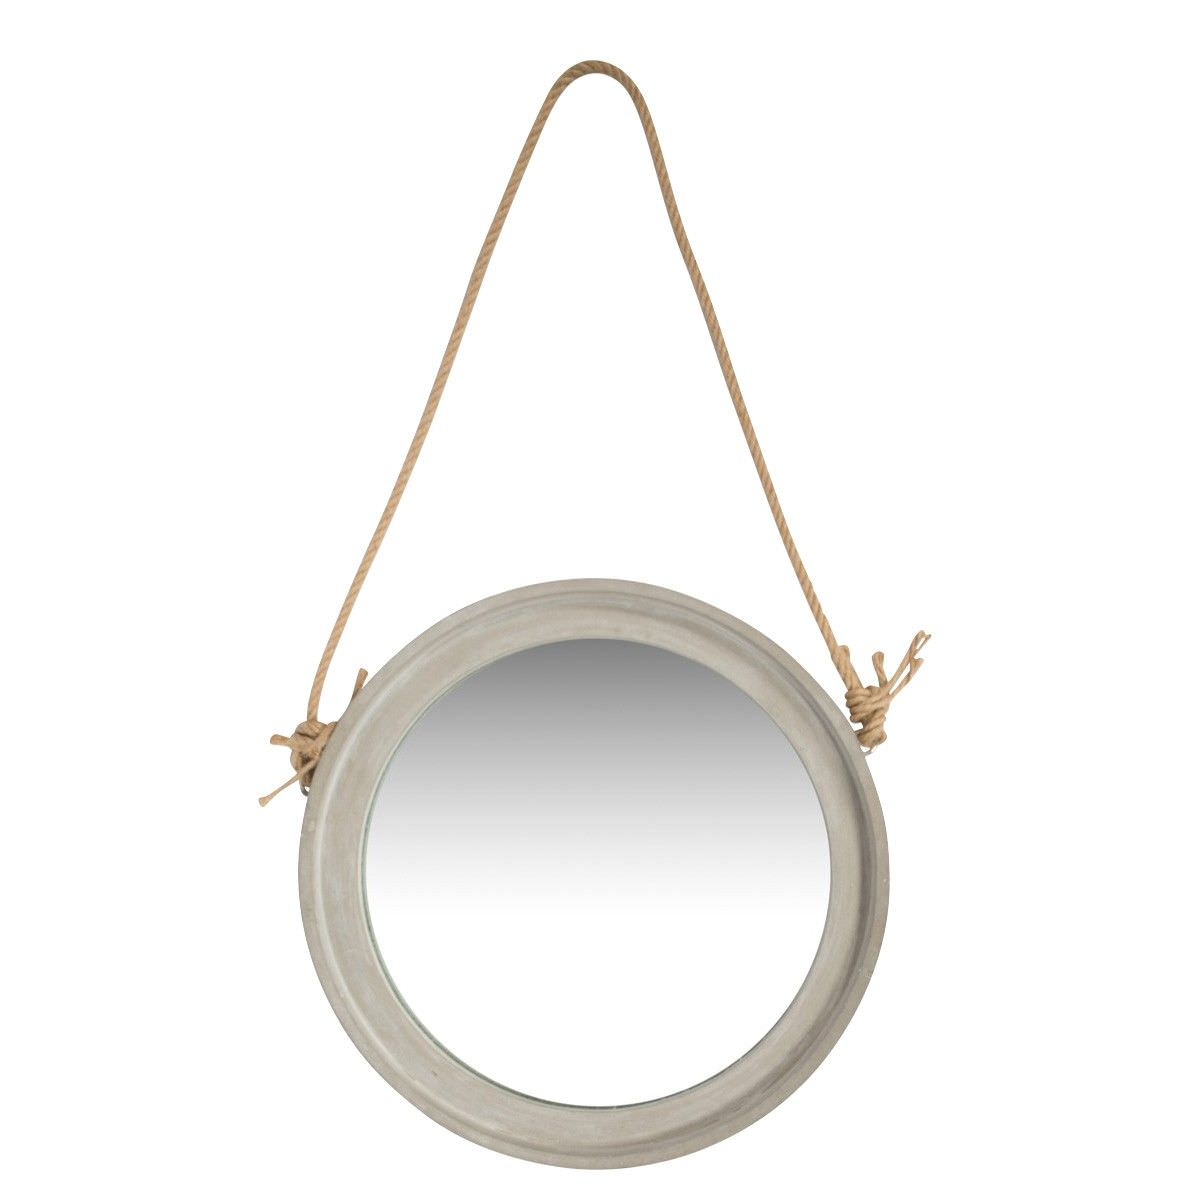 Kona Concrete Frame Round Hanging Mirror, Small, Raw Cement